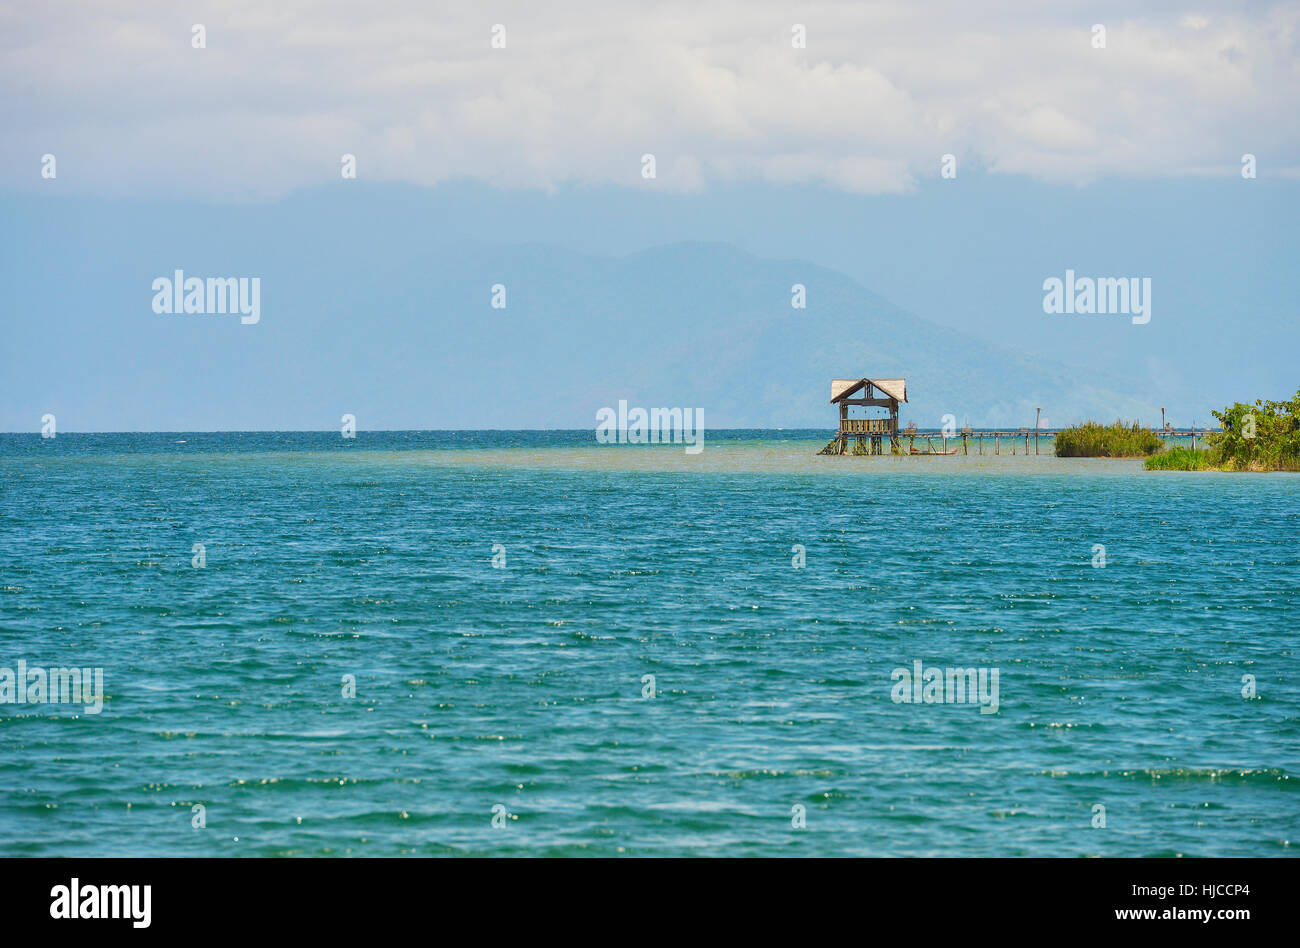 Panoramic view of a beach in Sulawesi, Indonesia. - Stock Image